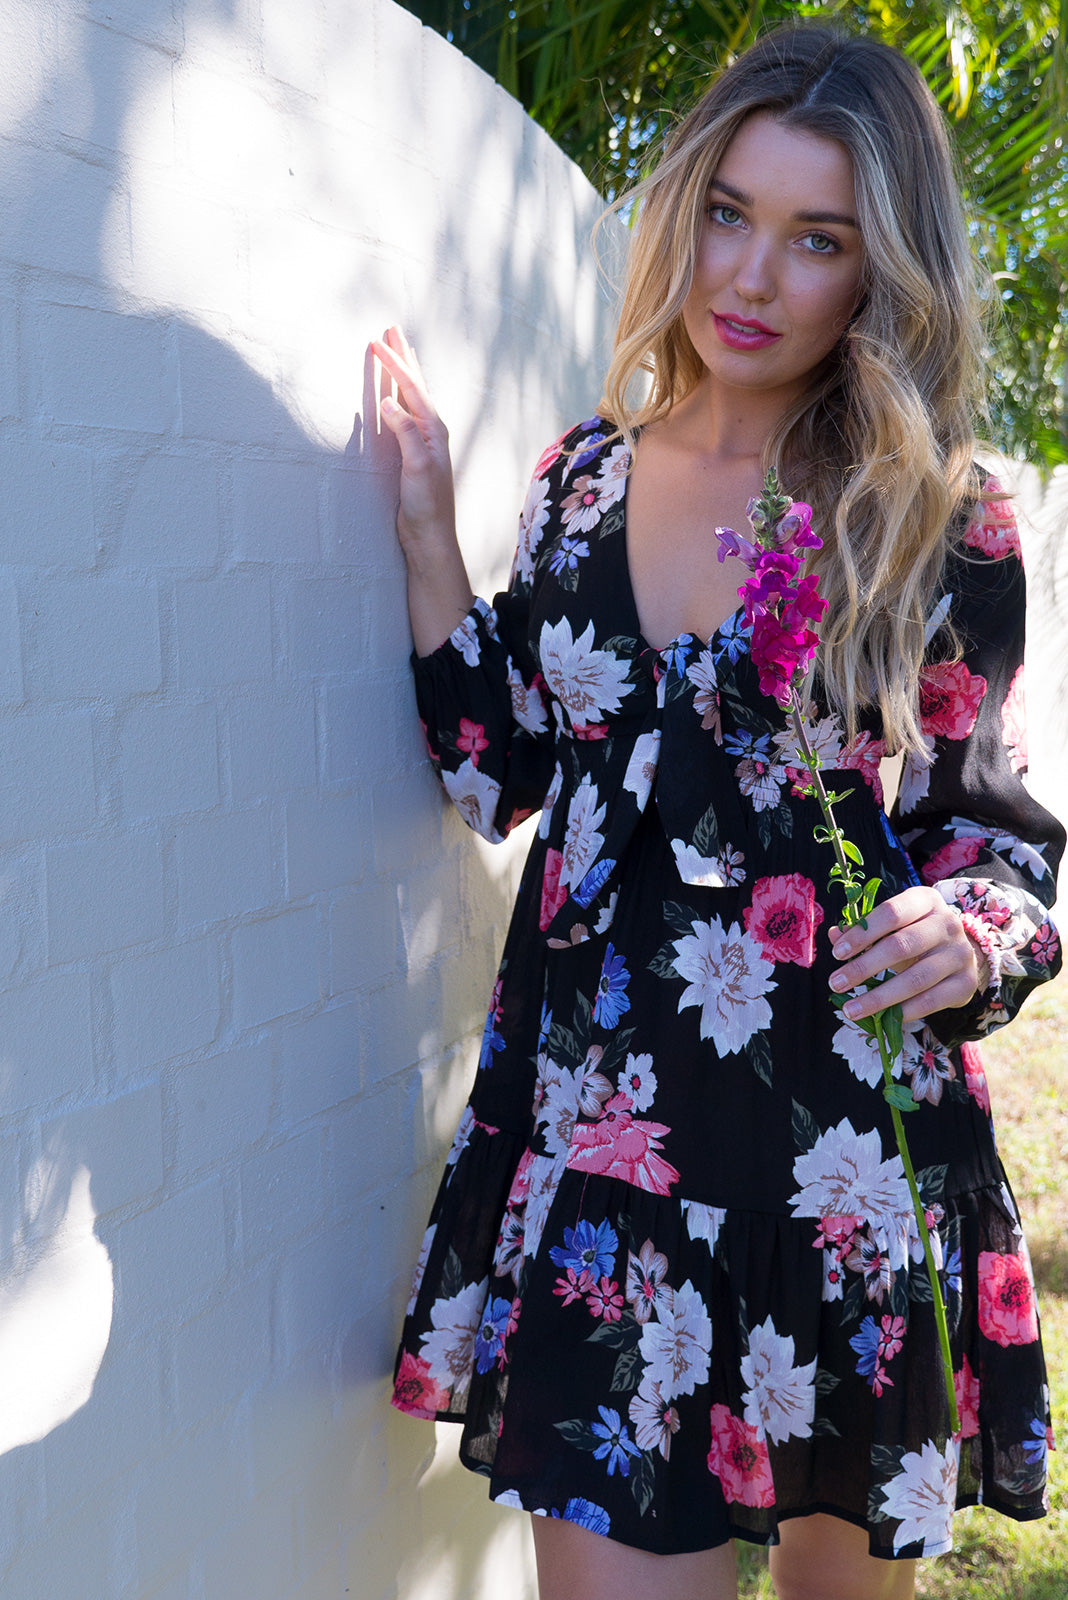 Ruby Floral Noir dark bright vintage boho inspired empire line elasticated waist dress with a adjustable tie front and tiered skirt in a soft crinkle textured dark bright black based floral print